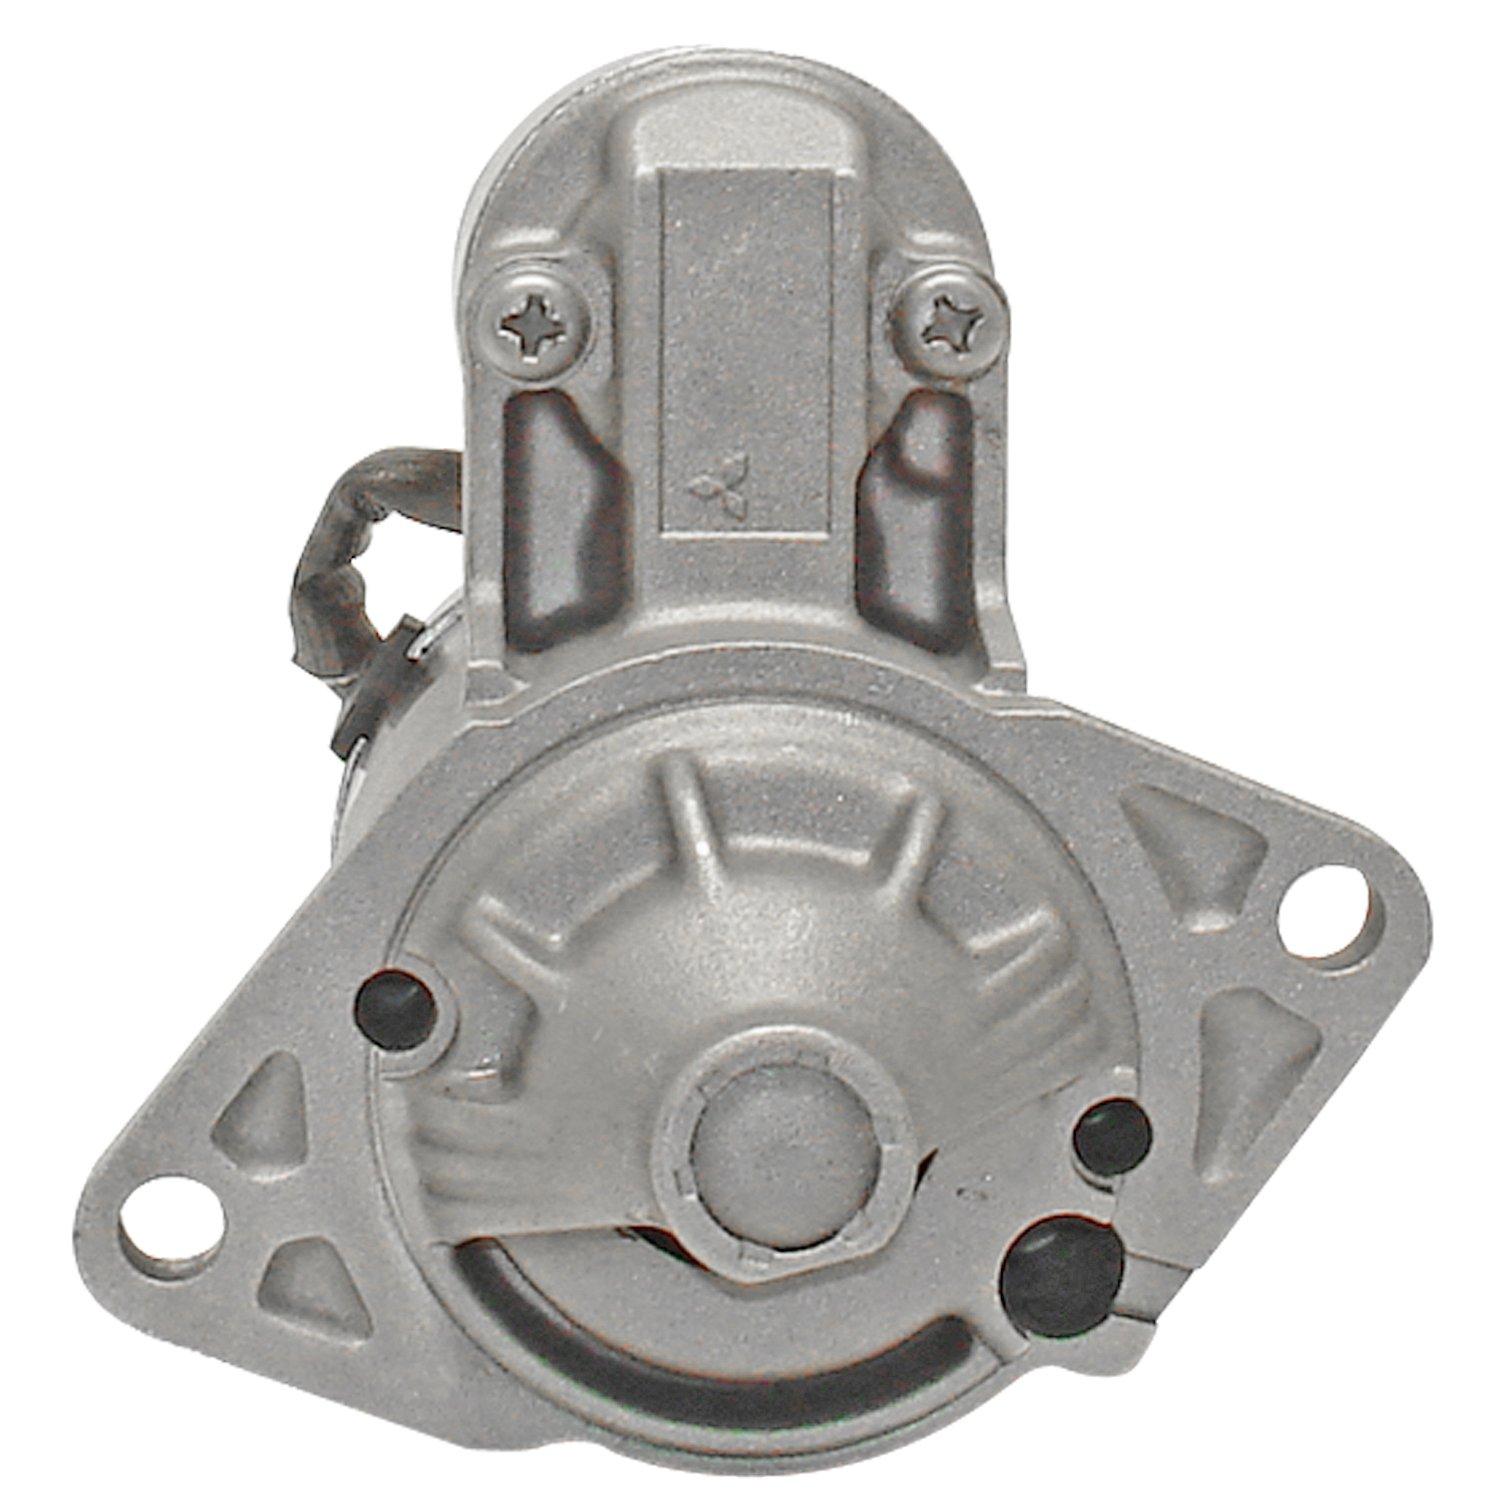 ACDelco 336-1071 Professional Starter, Remanufactured by ACDelco (Image #3)